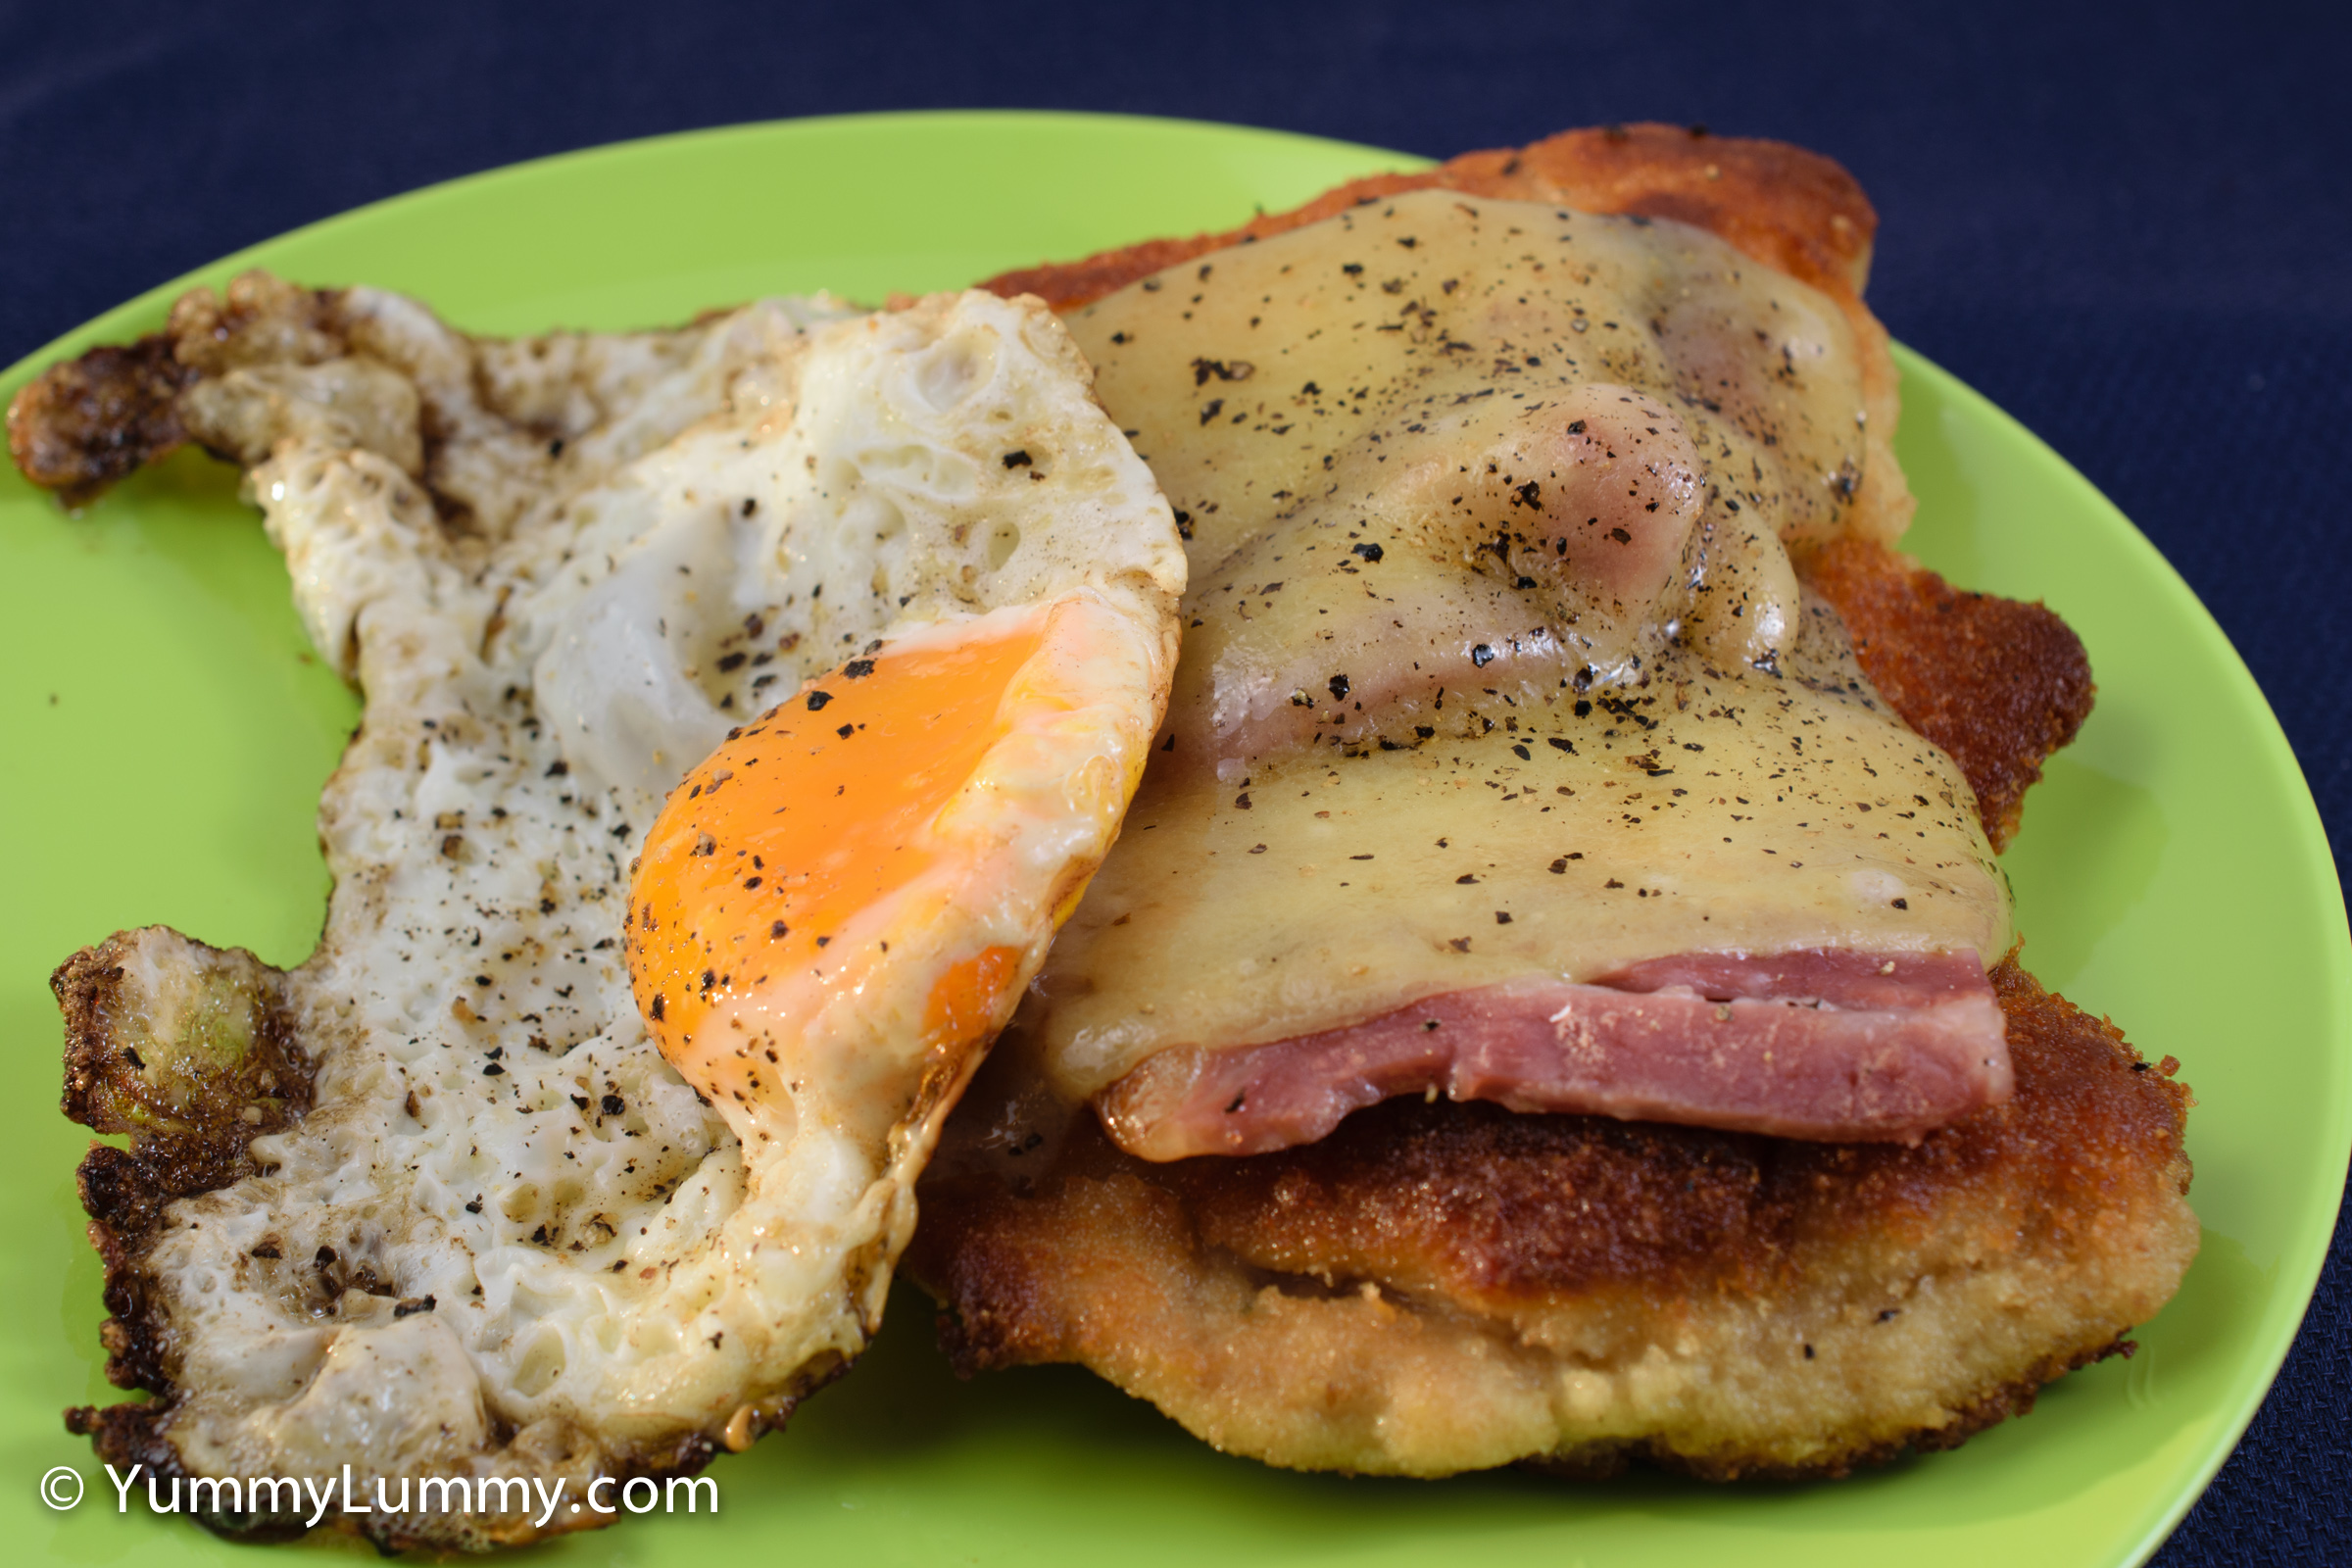 Crumbed chicken, bacon, tasty Coon cheese and a fried egg for Saturday #breakfast